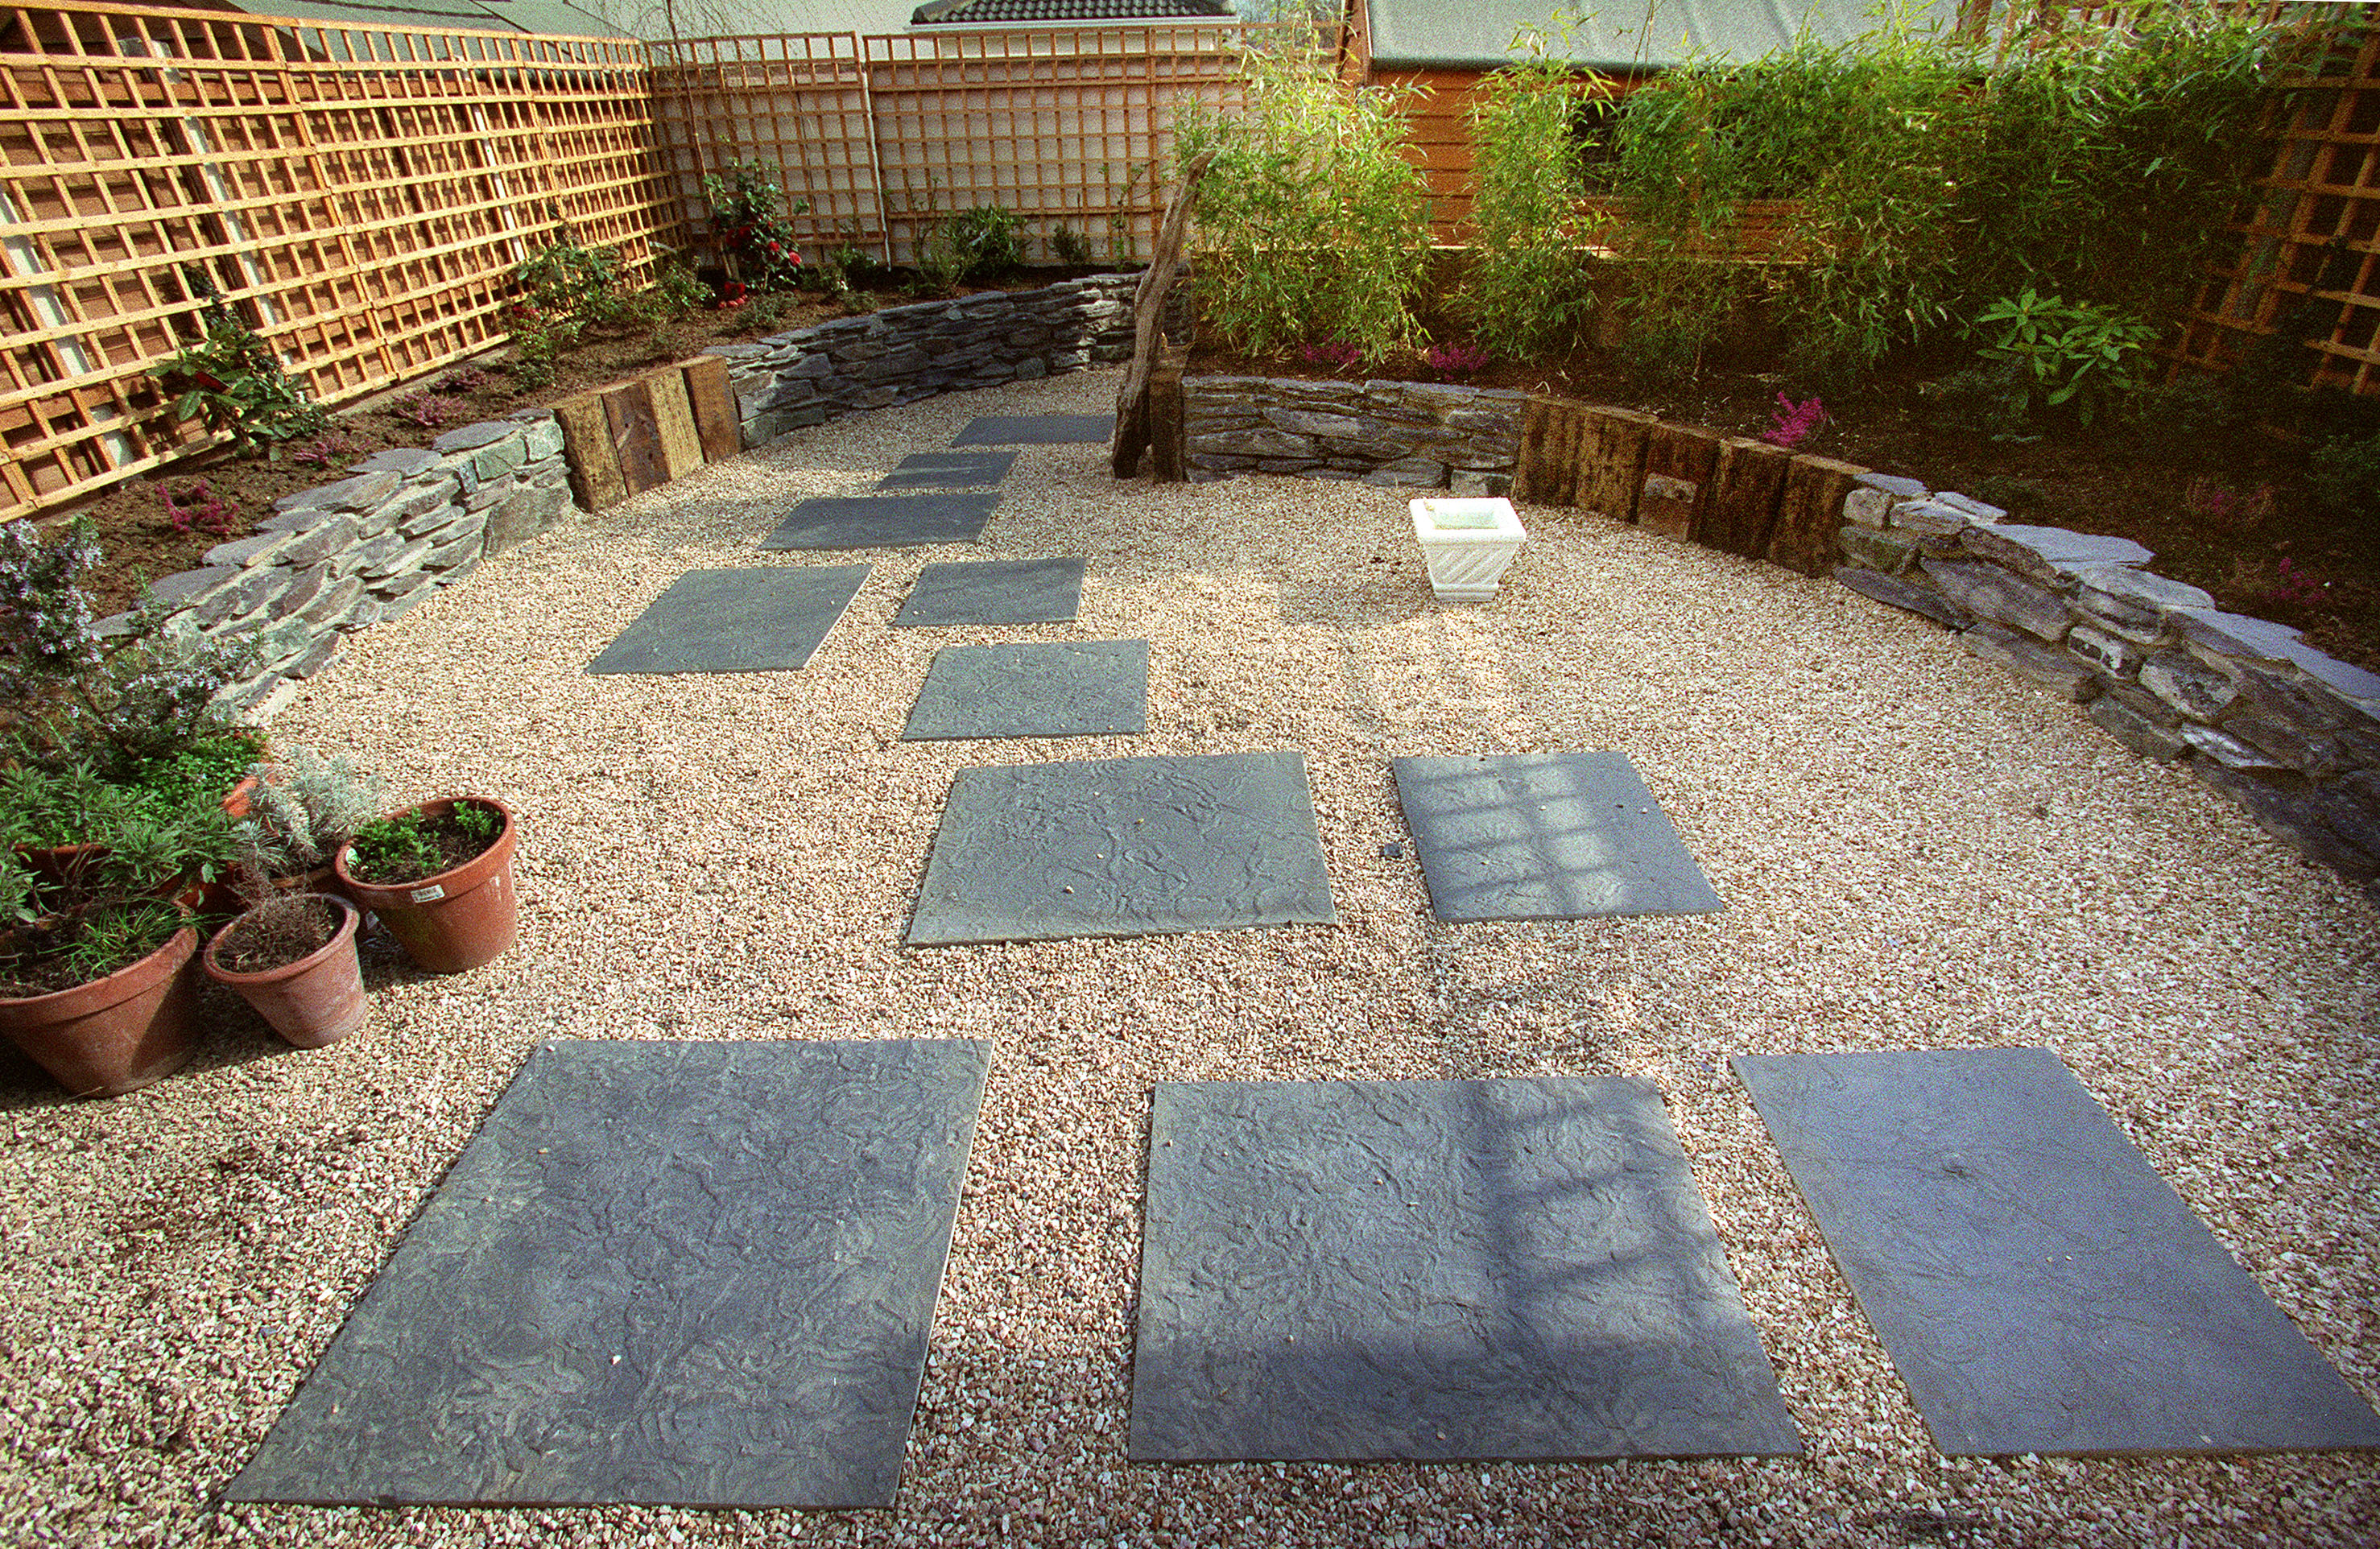 Landscapers and Garden Designers Contract, Kimmage, Co Dublin